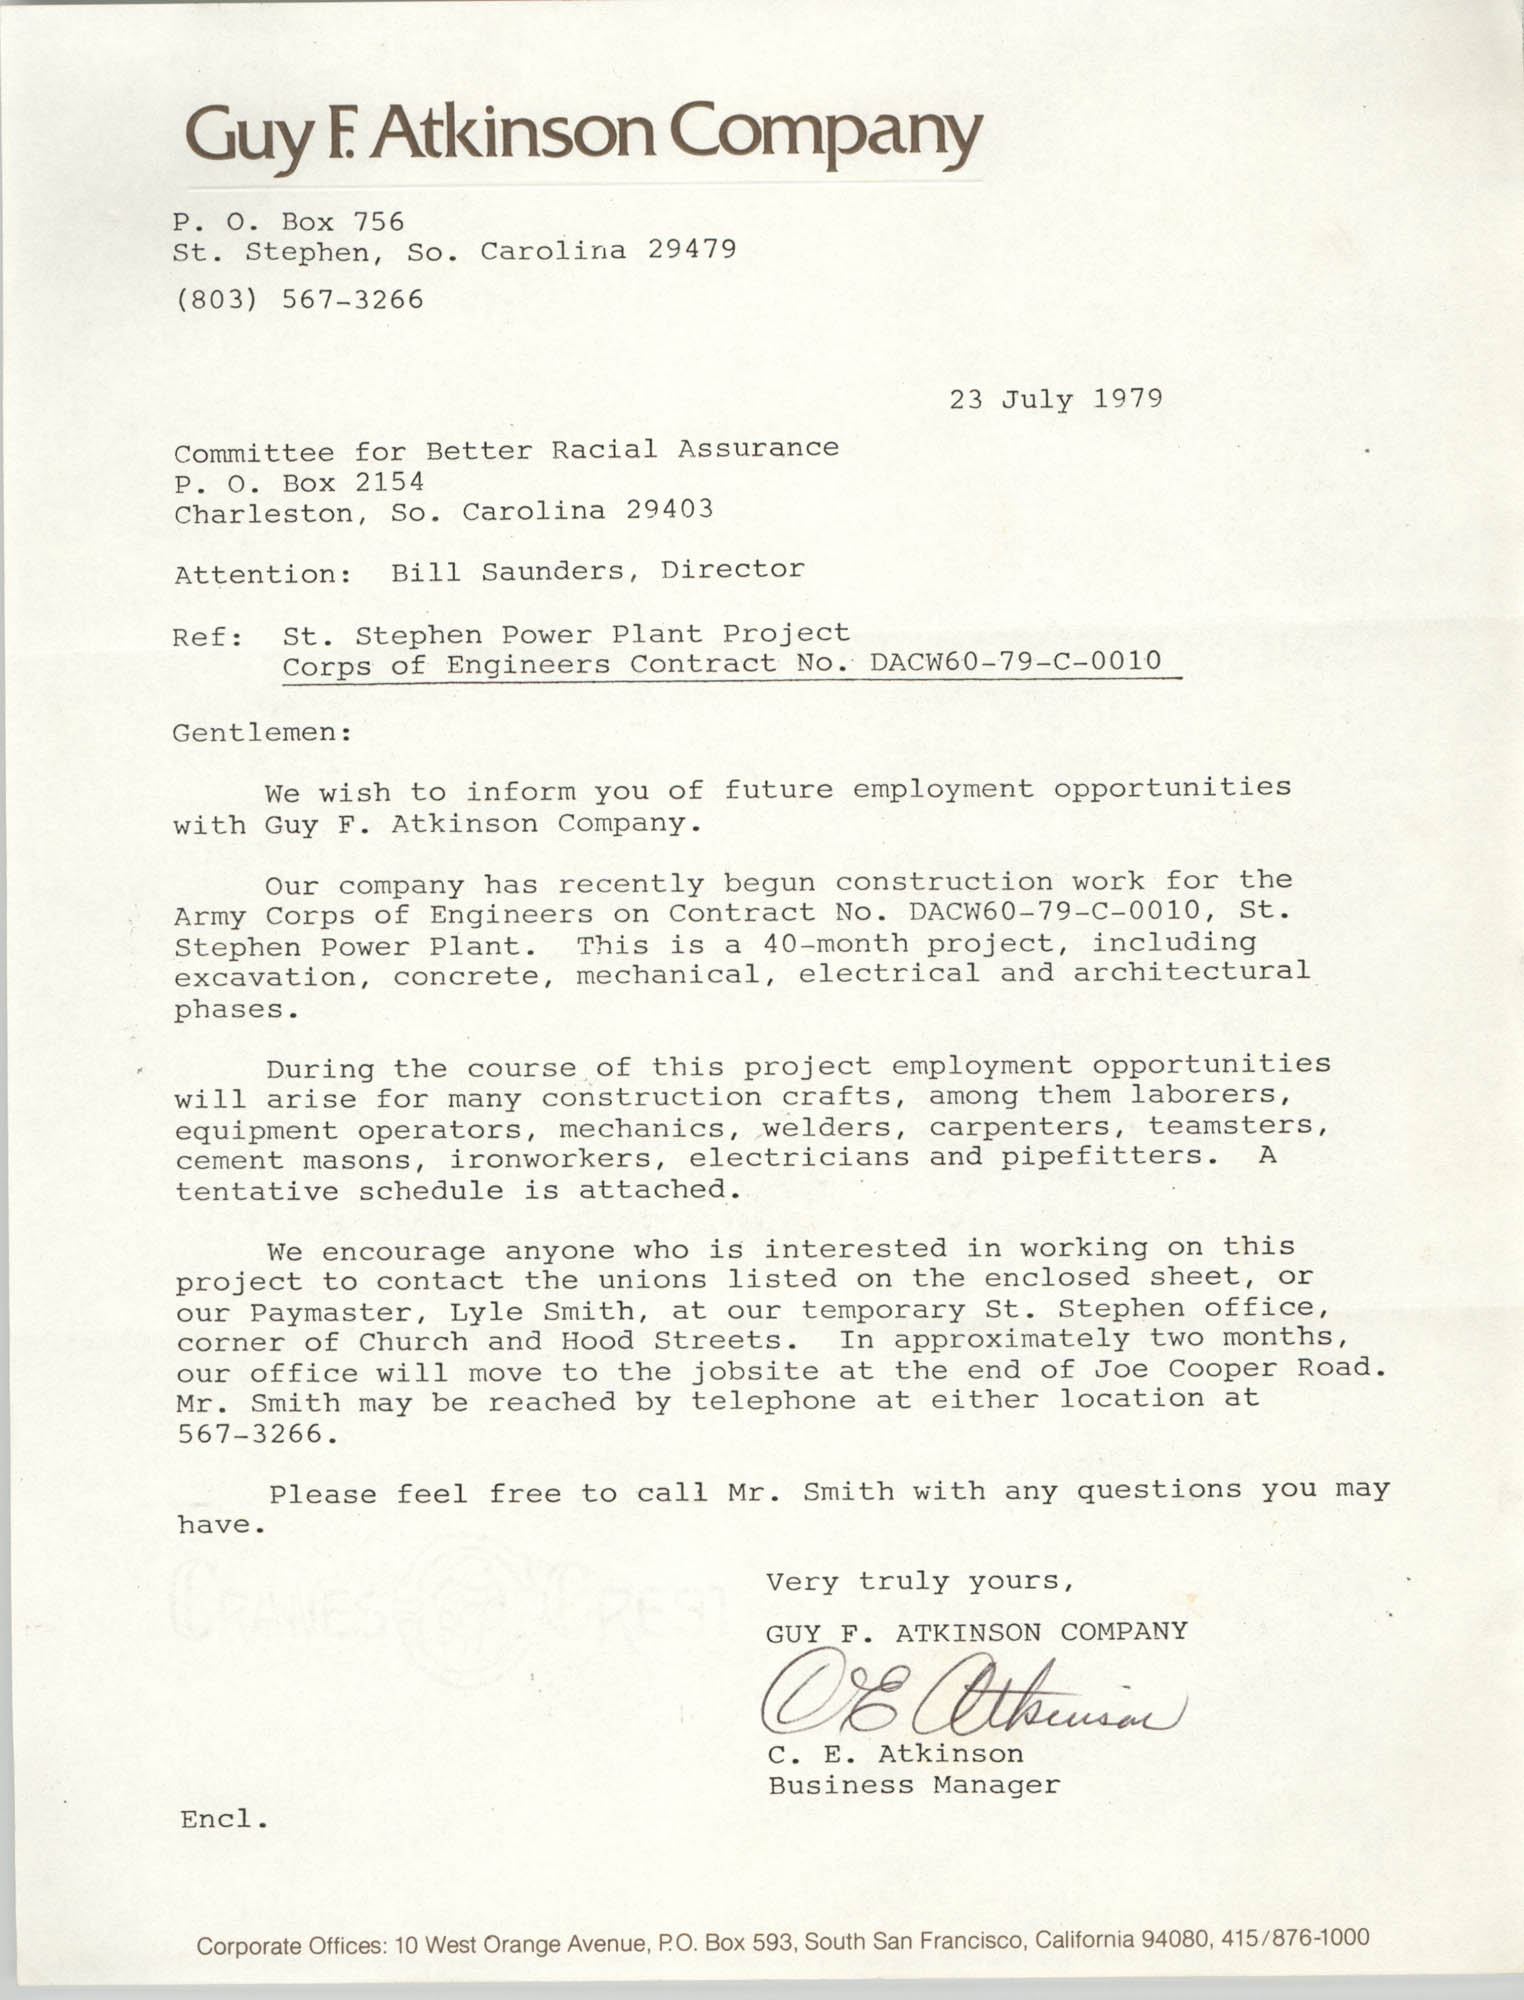 Letter from C. E. Atkinson to William Saunders, July 23, 1979